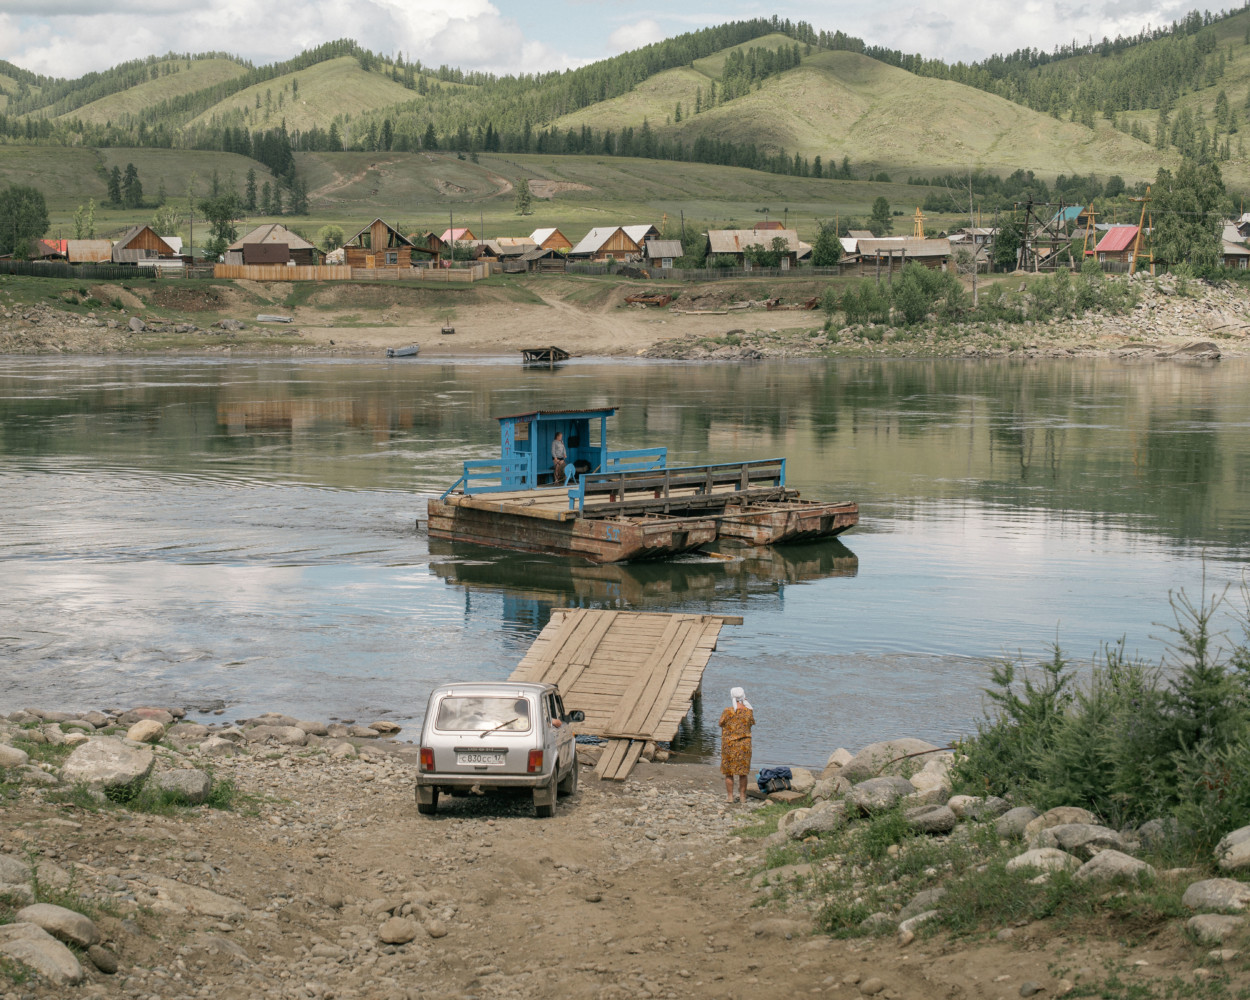 Photographing Social and Geographical Isolation Between Siberia and the Ruhr • Nanna Heitmann • Magnum Photos